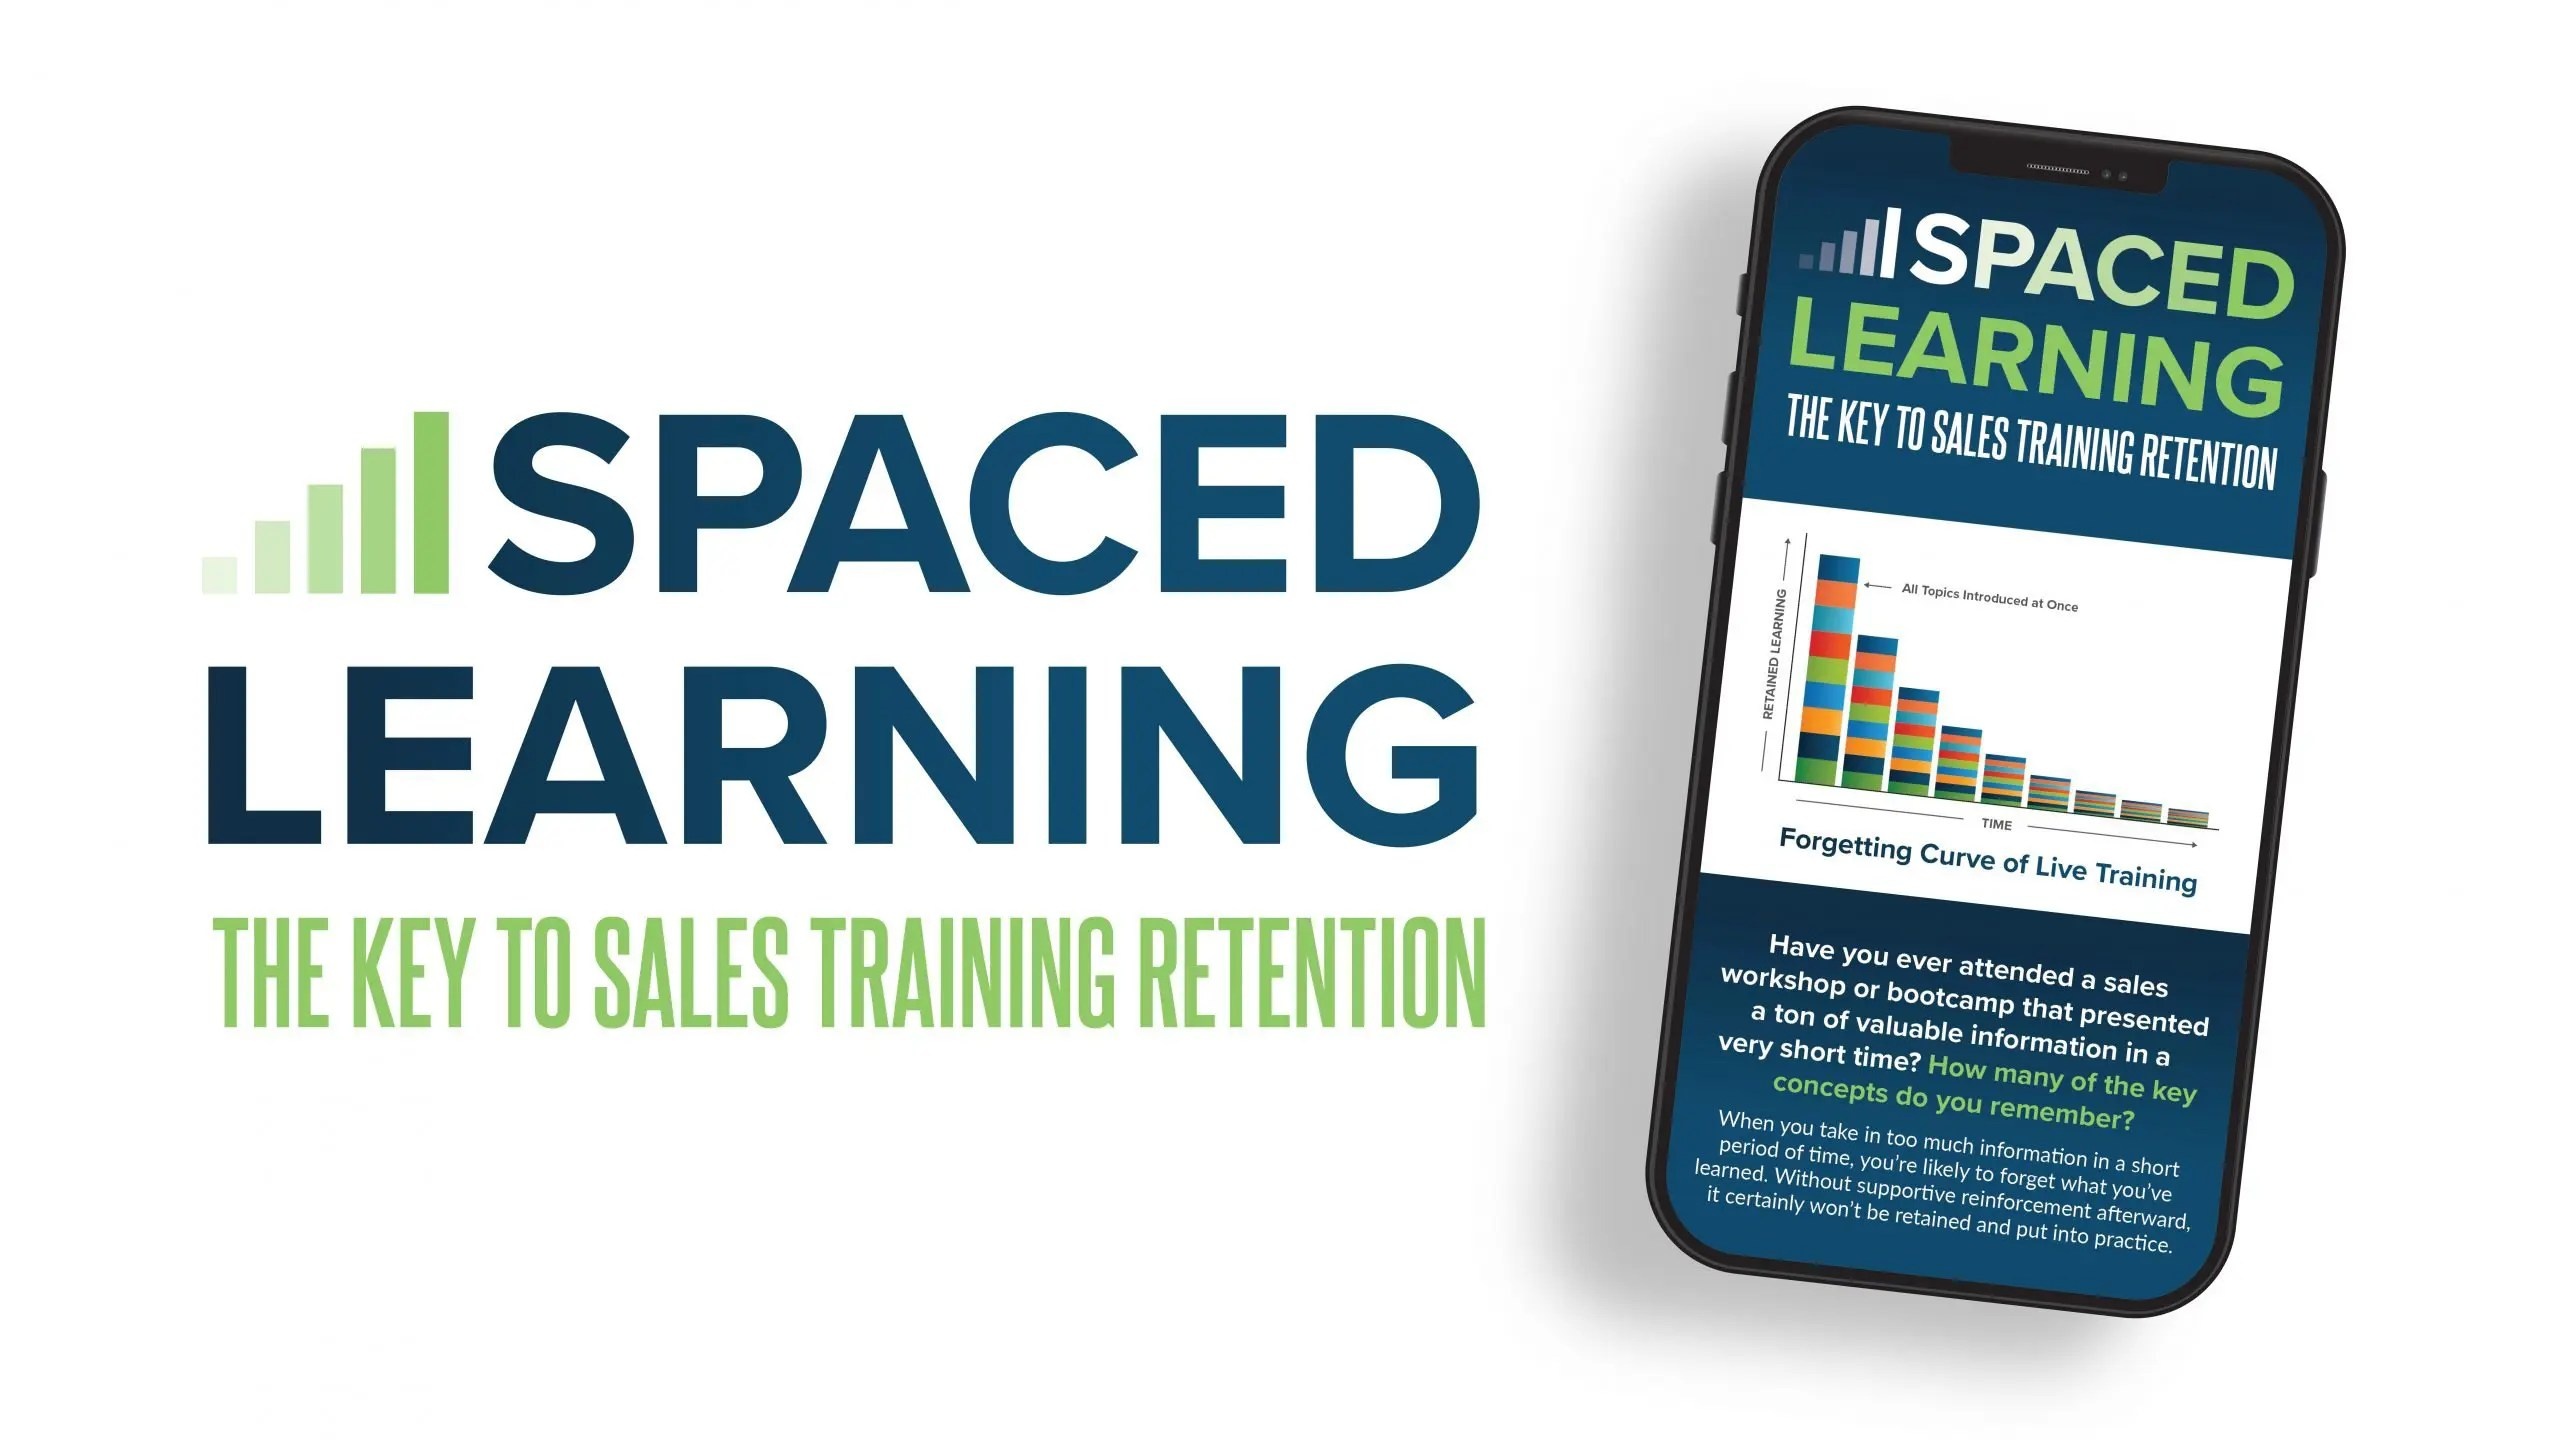 spaced learning infographic